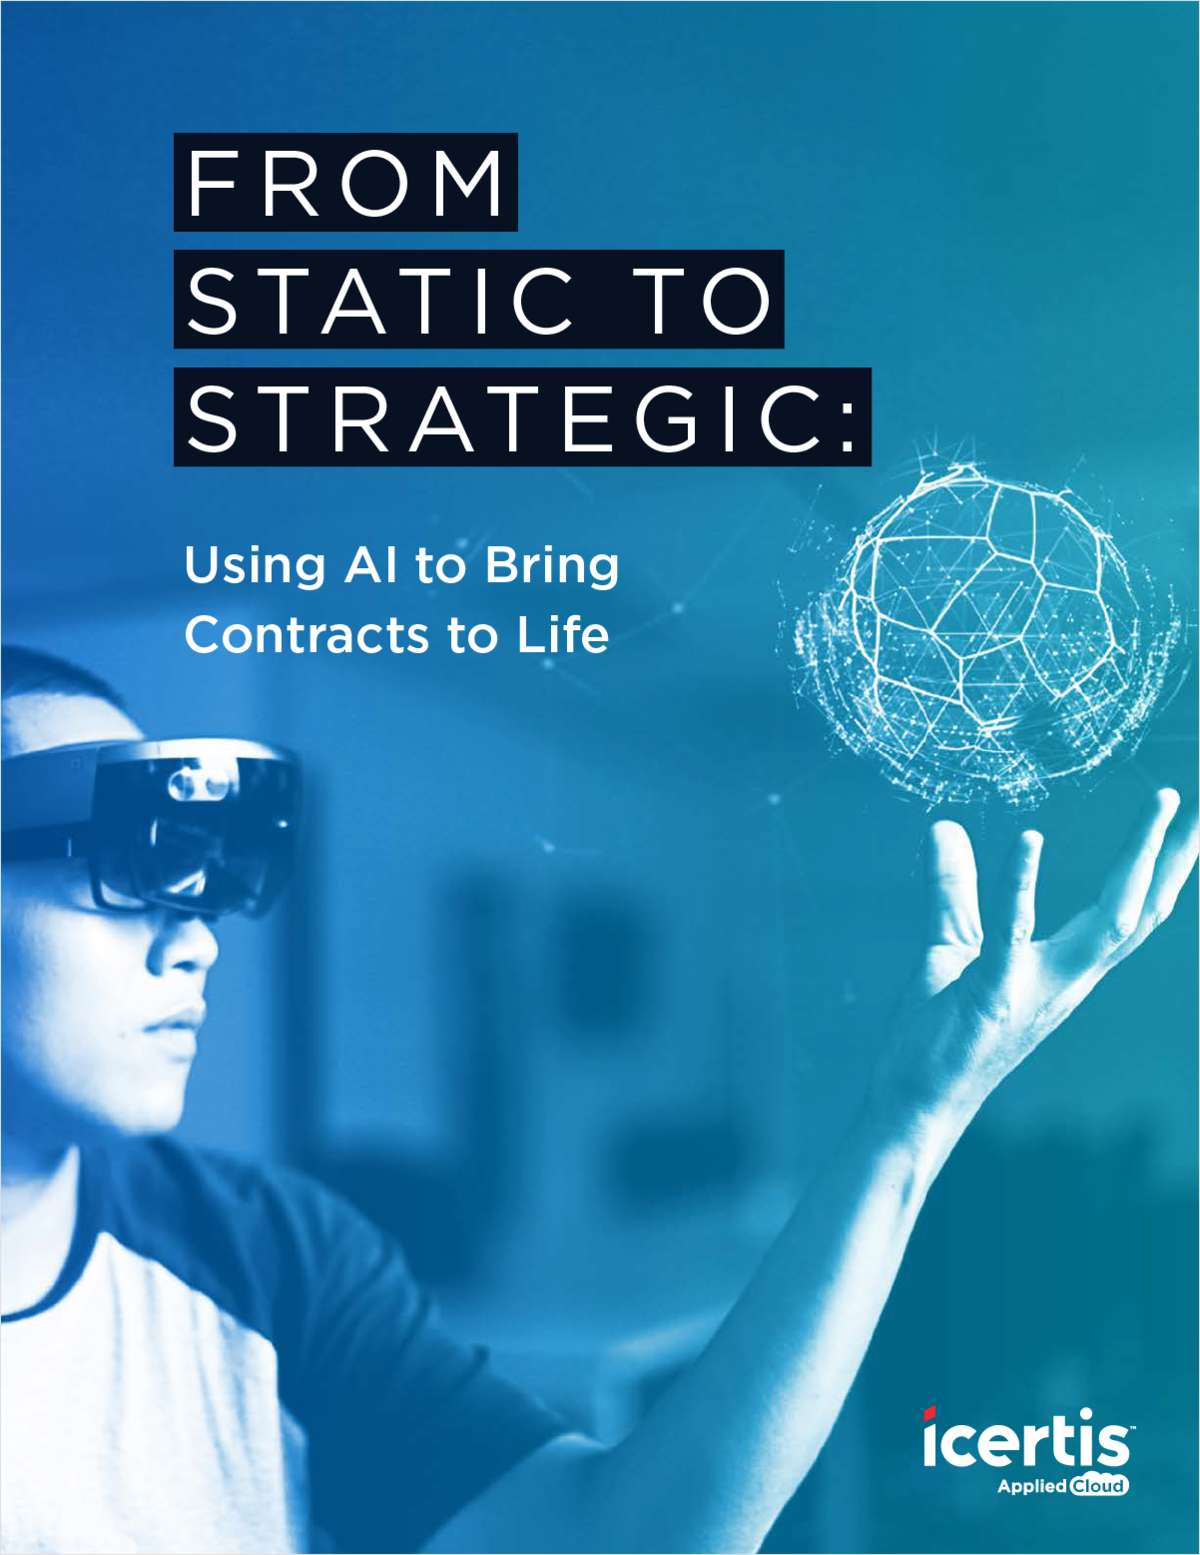 From Static to Strategic: Using AI to Bring Contracts to Life